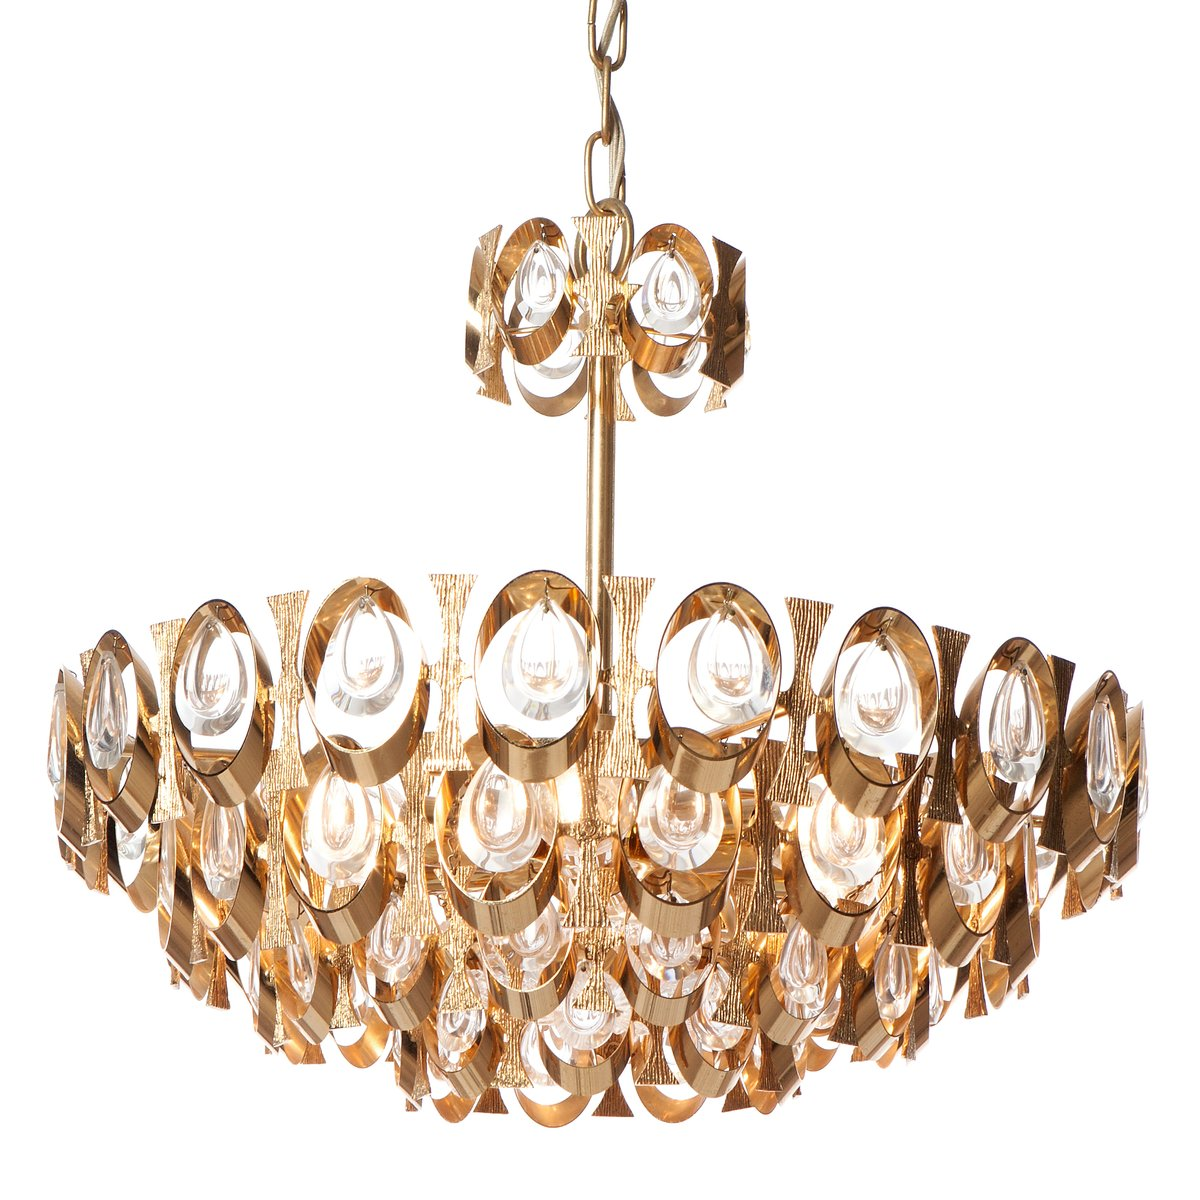 Six light crystal glass and gilt brass chandelier by sciolari for six light crystal glass and gilt brass chandelier by sciolari for palwa aloadofball Images